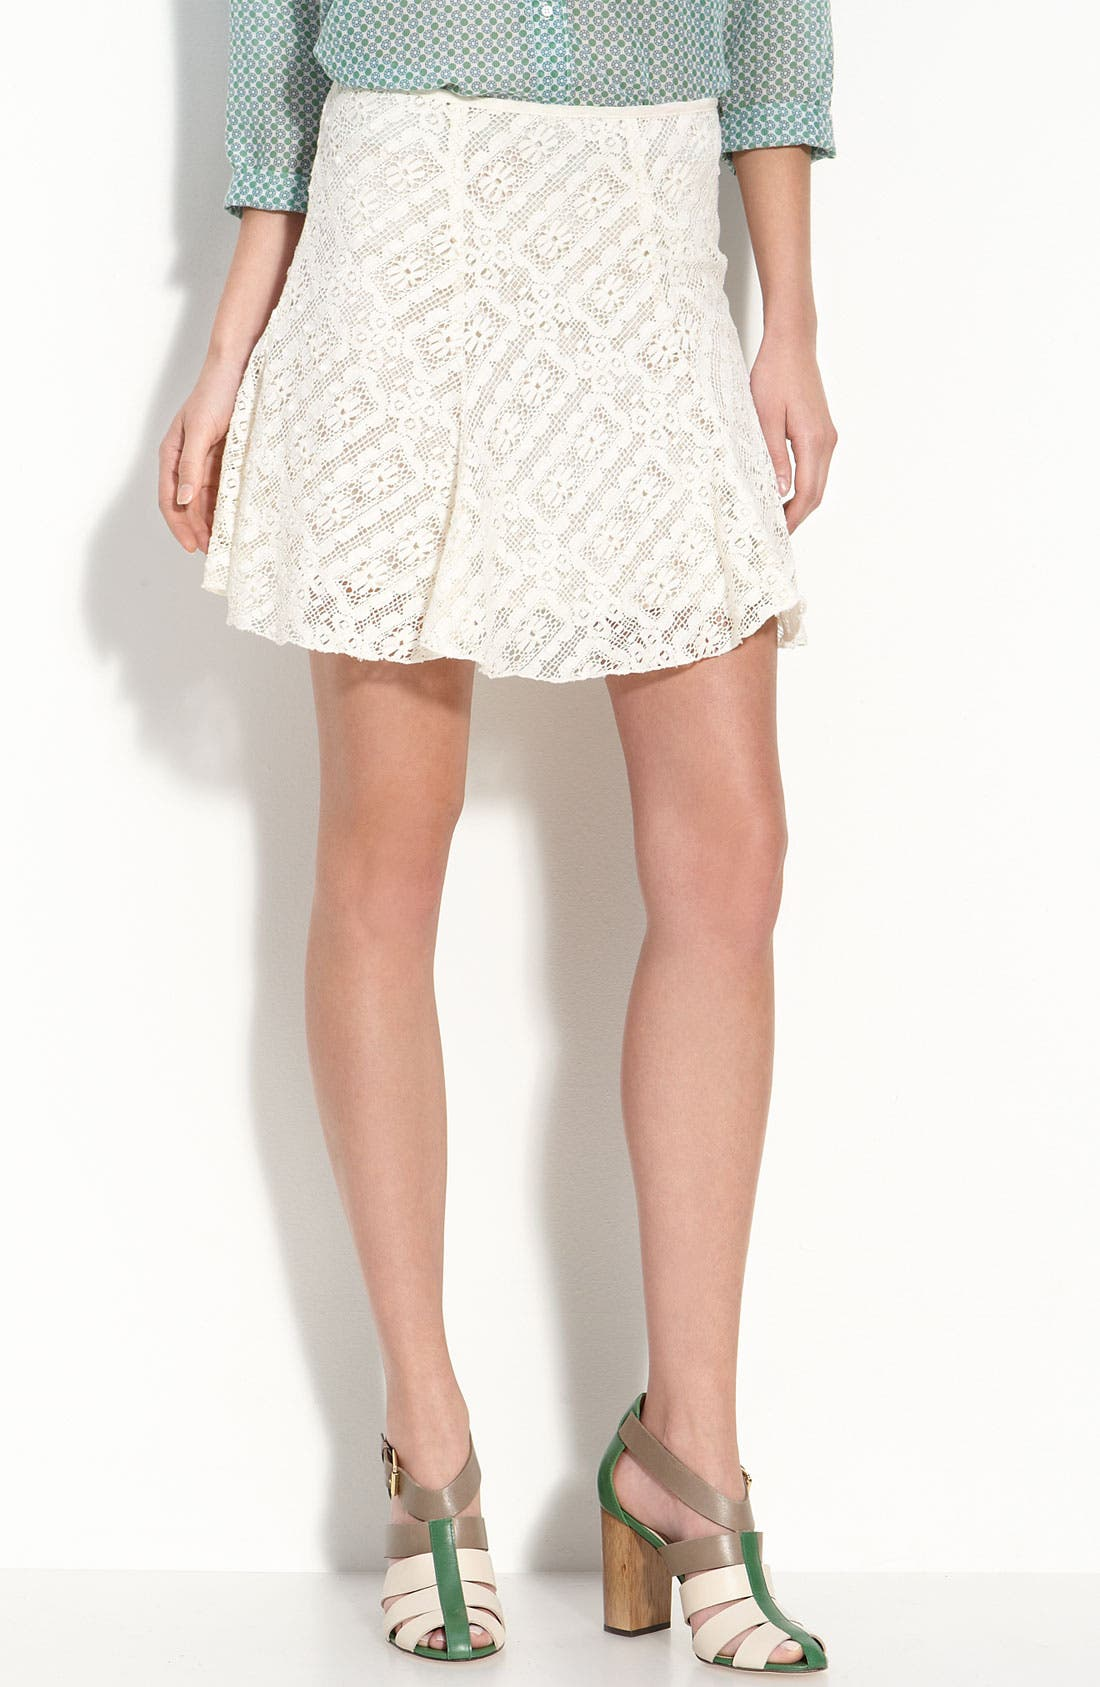 Alternate Image 1 Selected - TEXTILE Elizabeth and James 'Darcy' Garden Lace Skirt